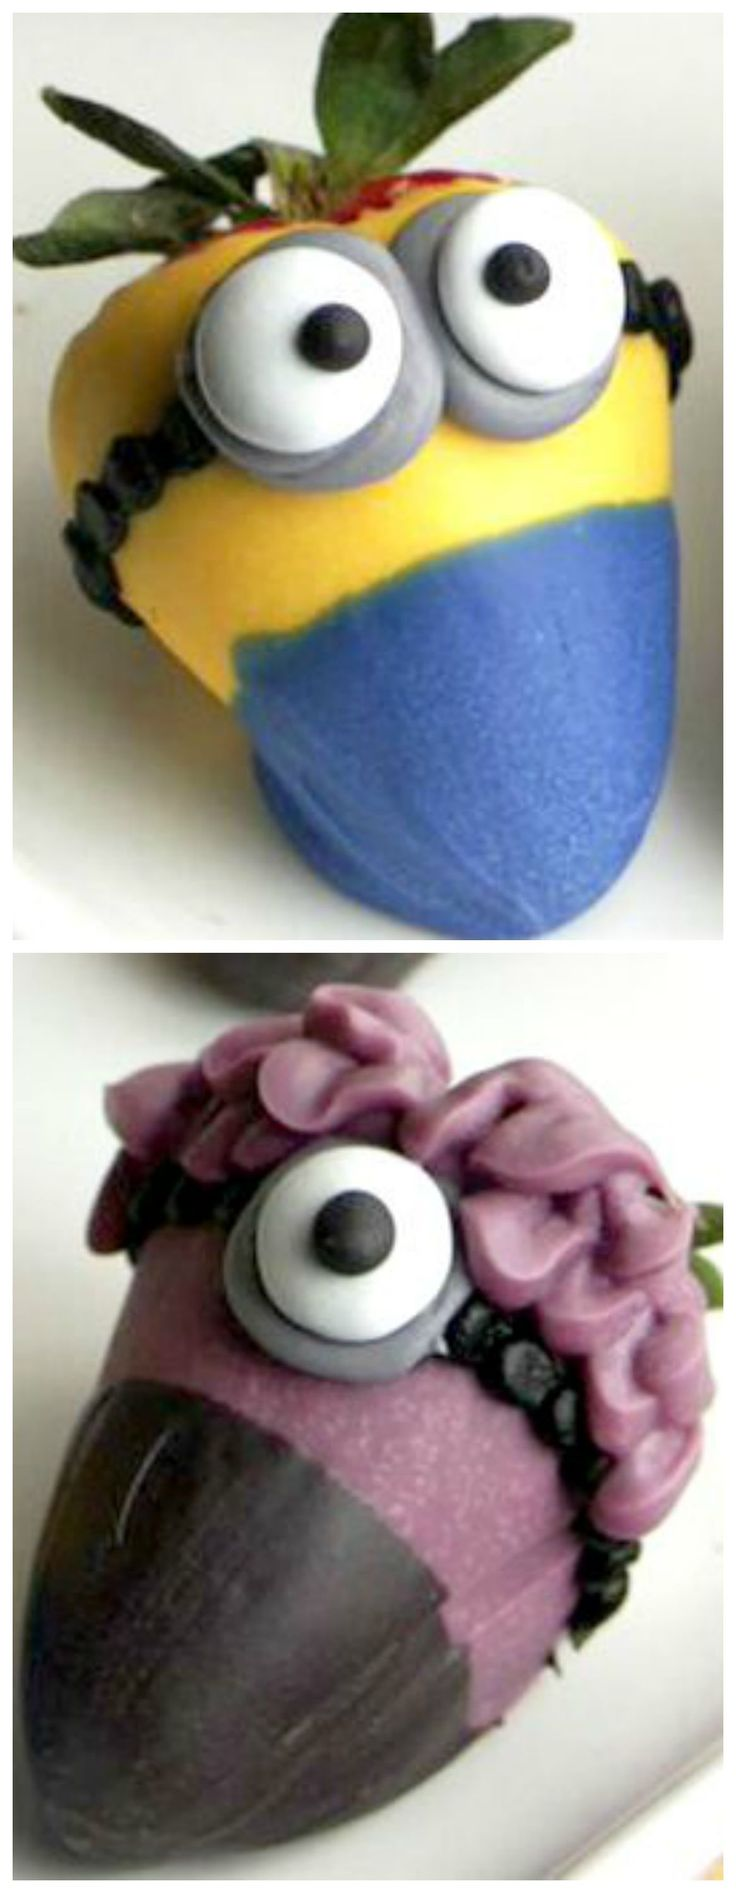 How to Make Minion Strawberries ~ These cute little strawberry characters are so adorable... Perfect for a Minion Themed Party!